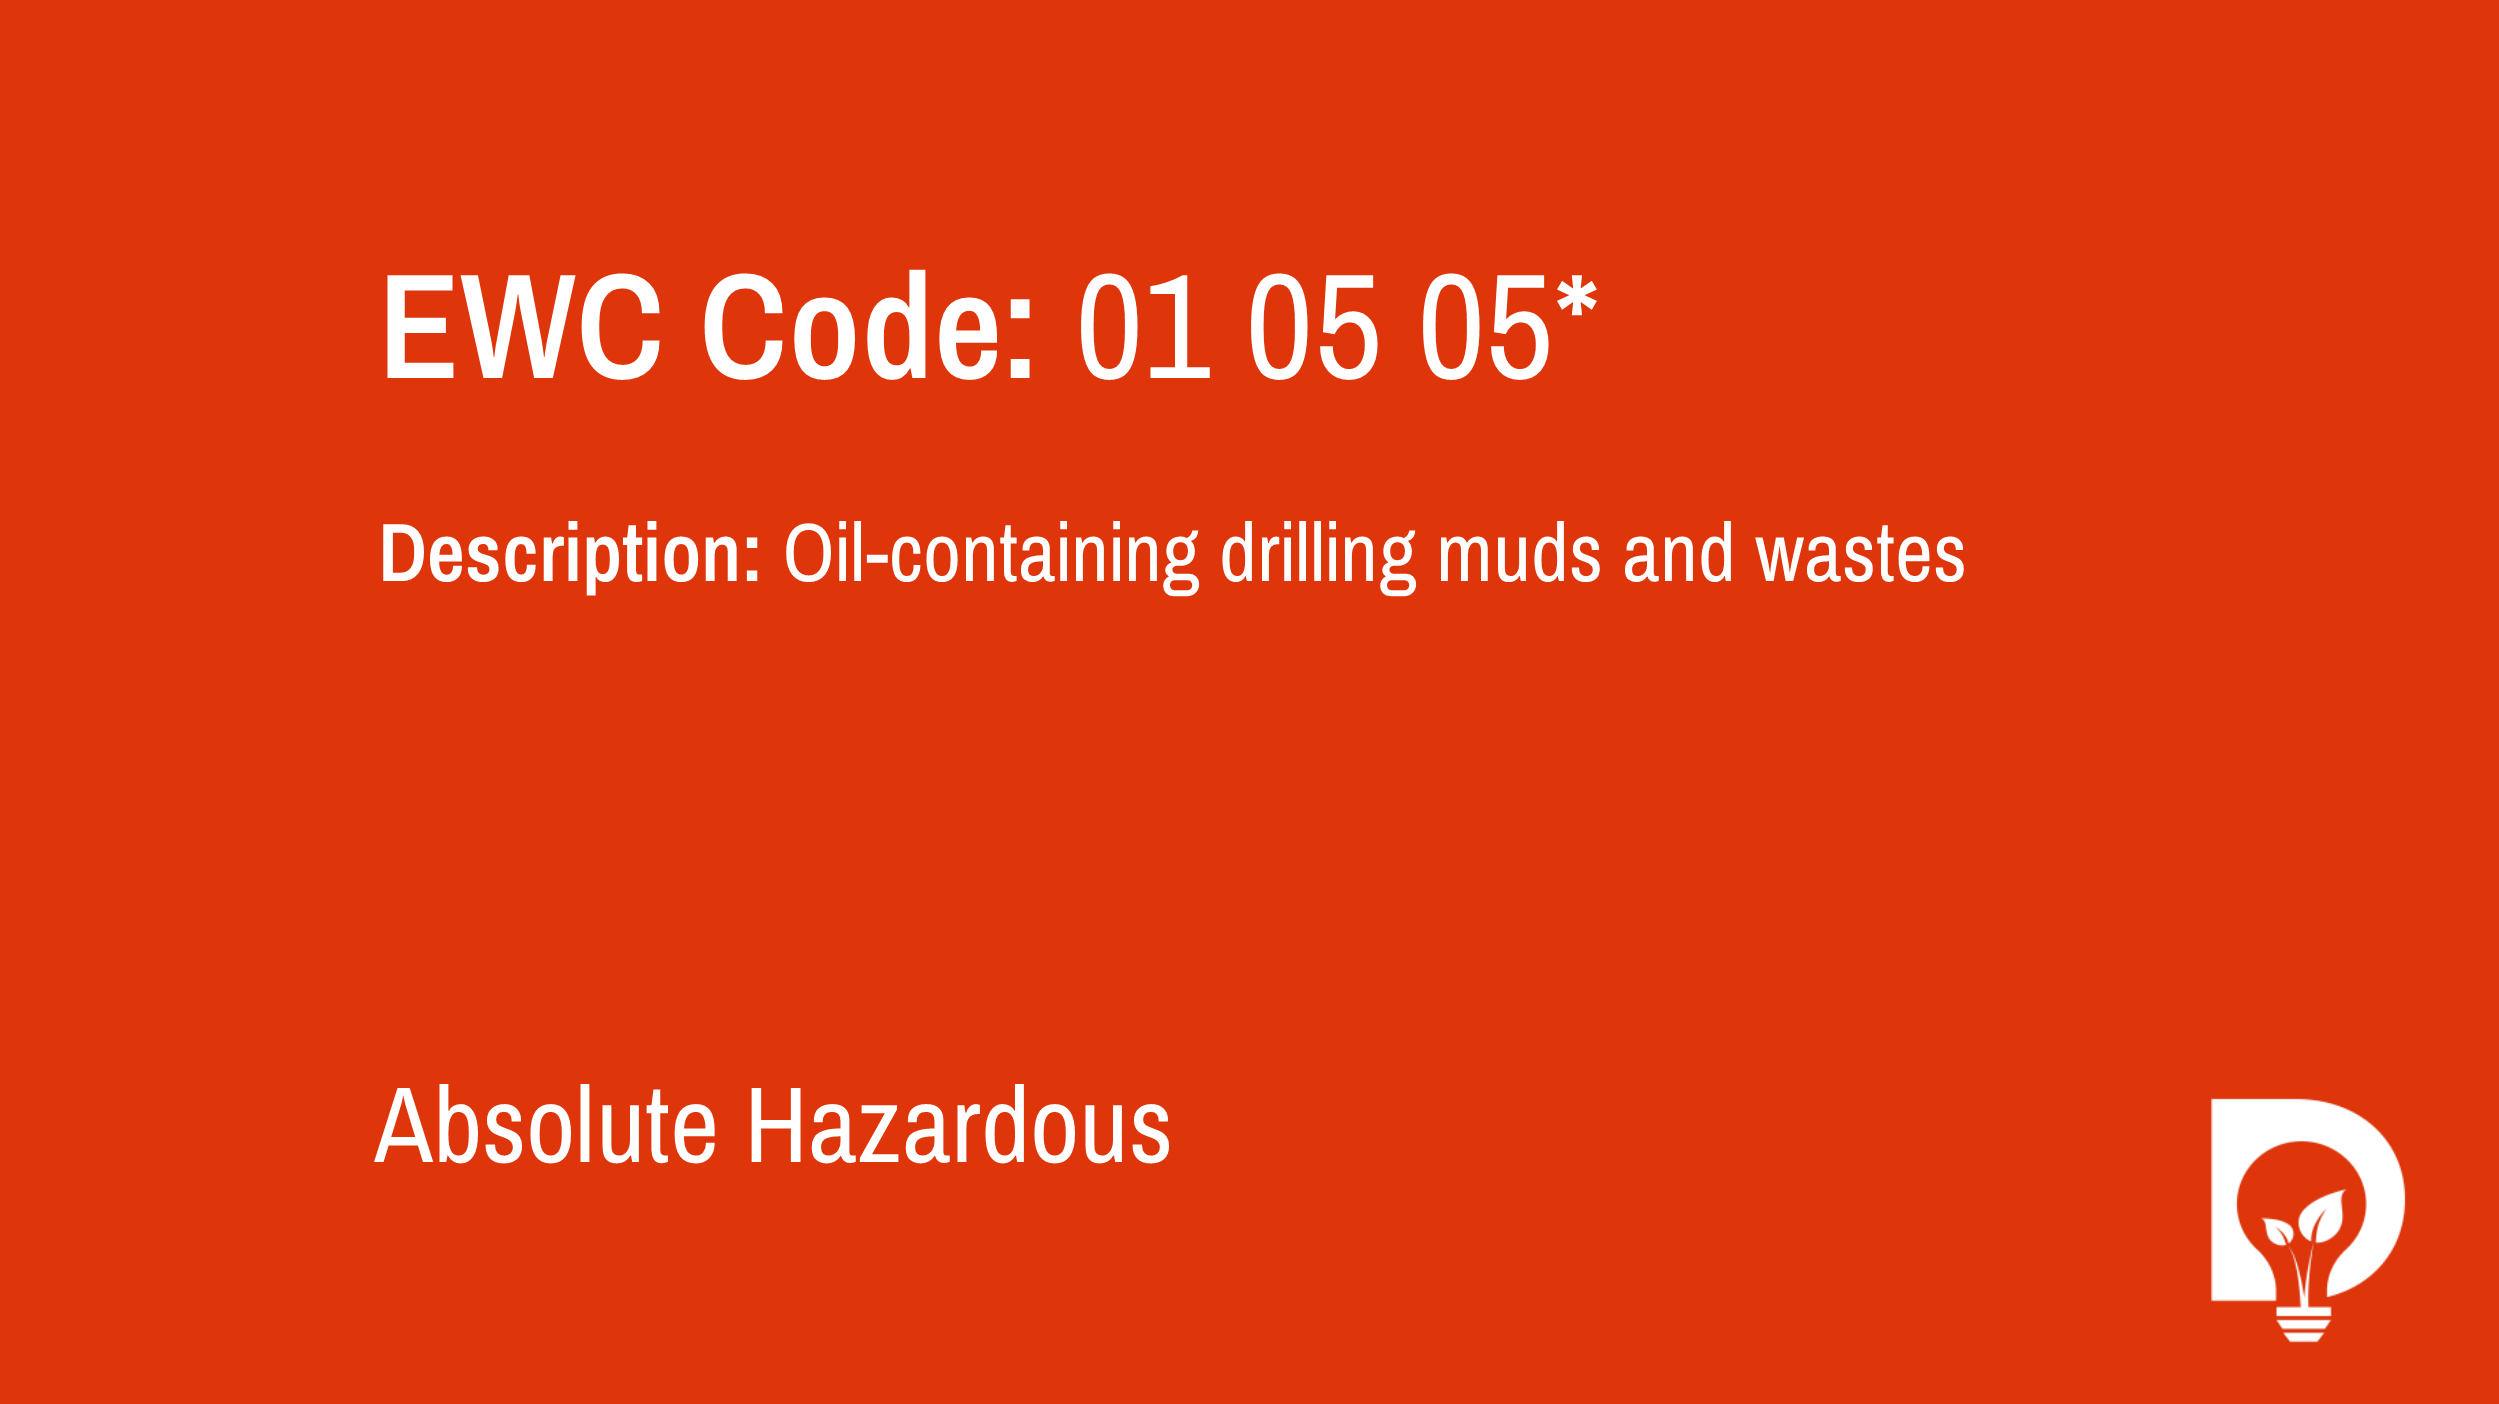 EWC Code: 01 05 05* - oil-containing drilling muds and wastes. Type: Absolute Hazardous. Image by Dsposal